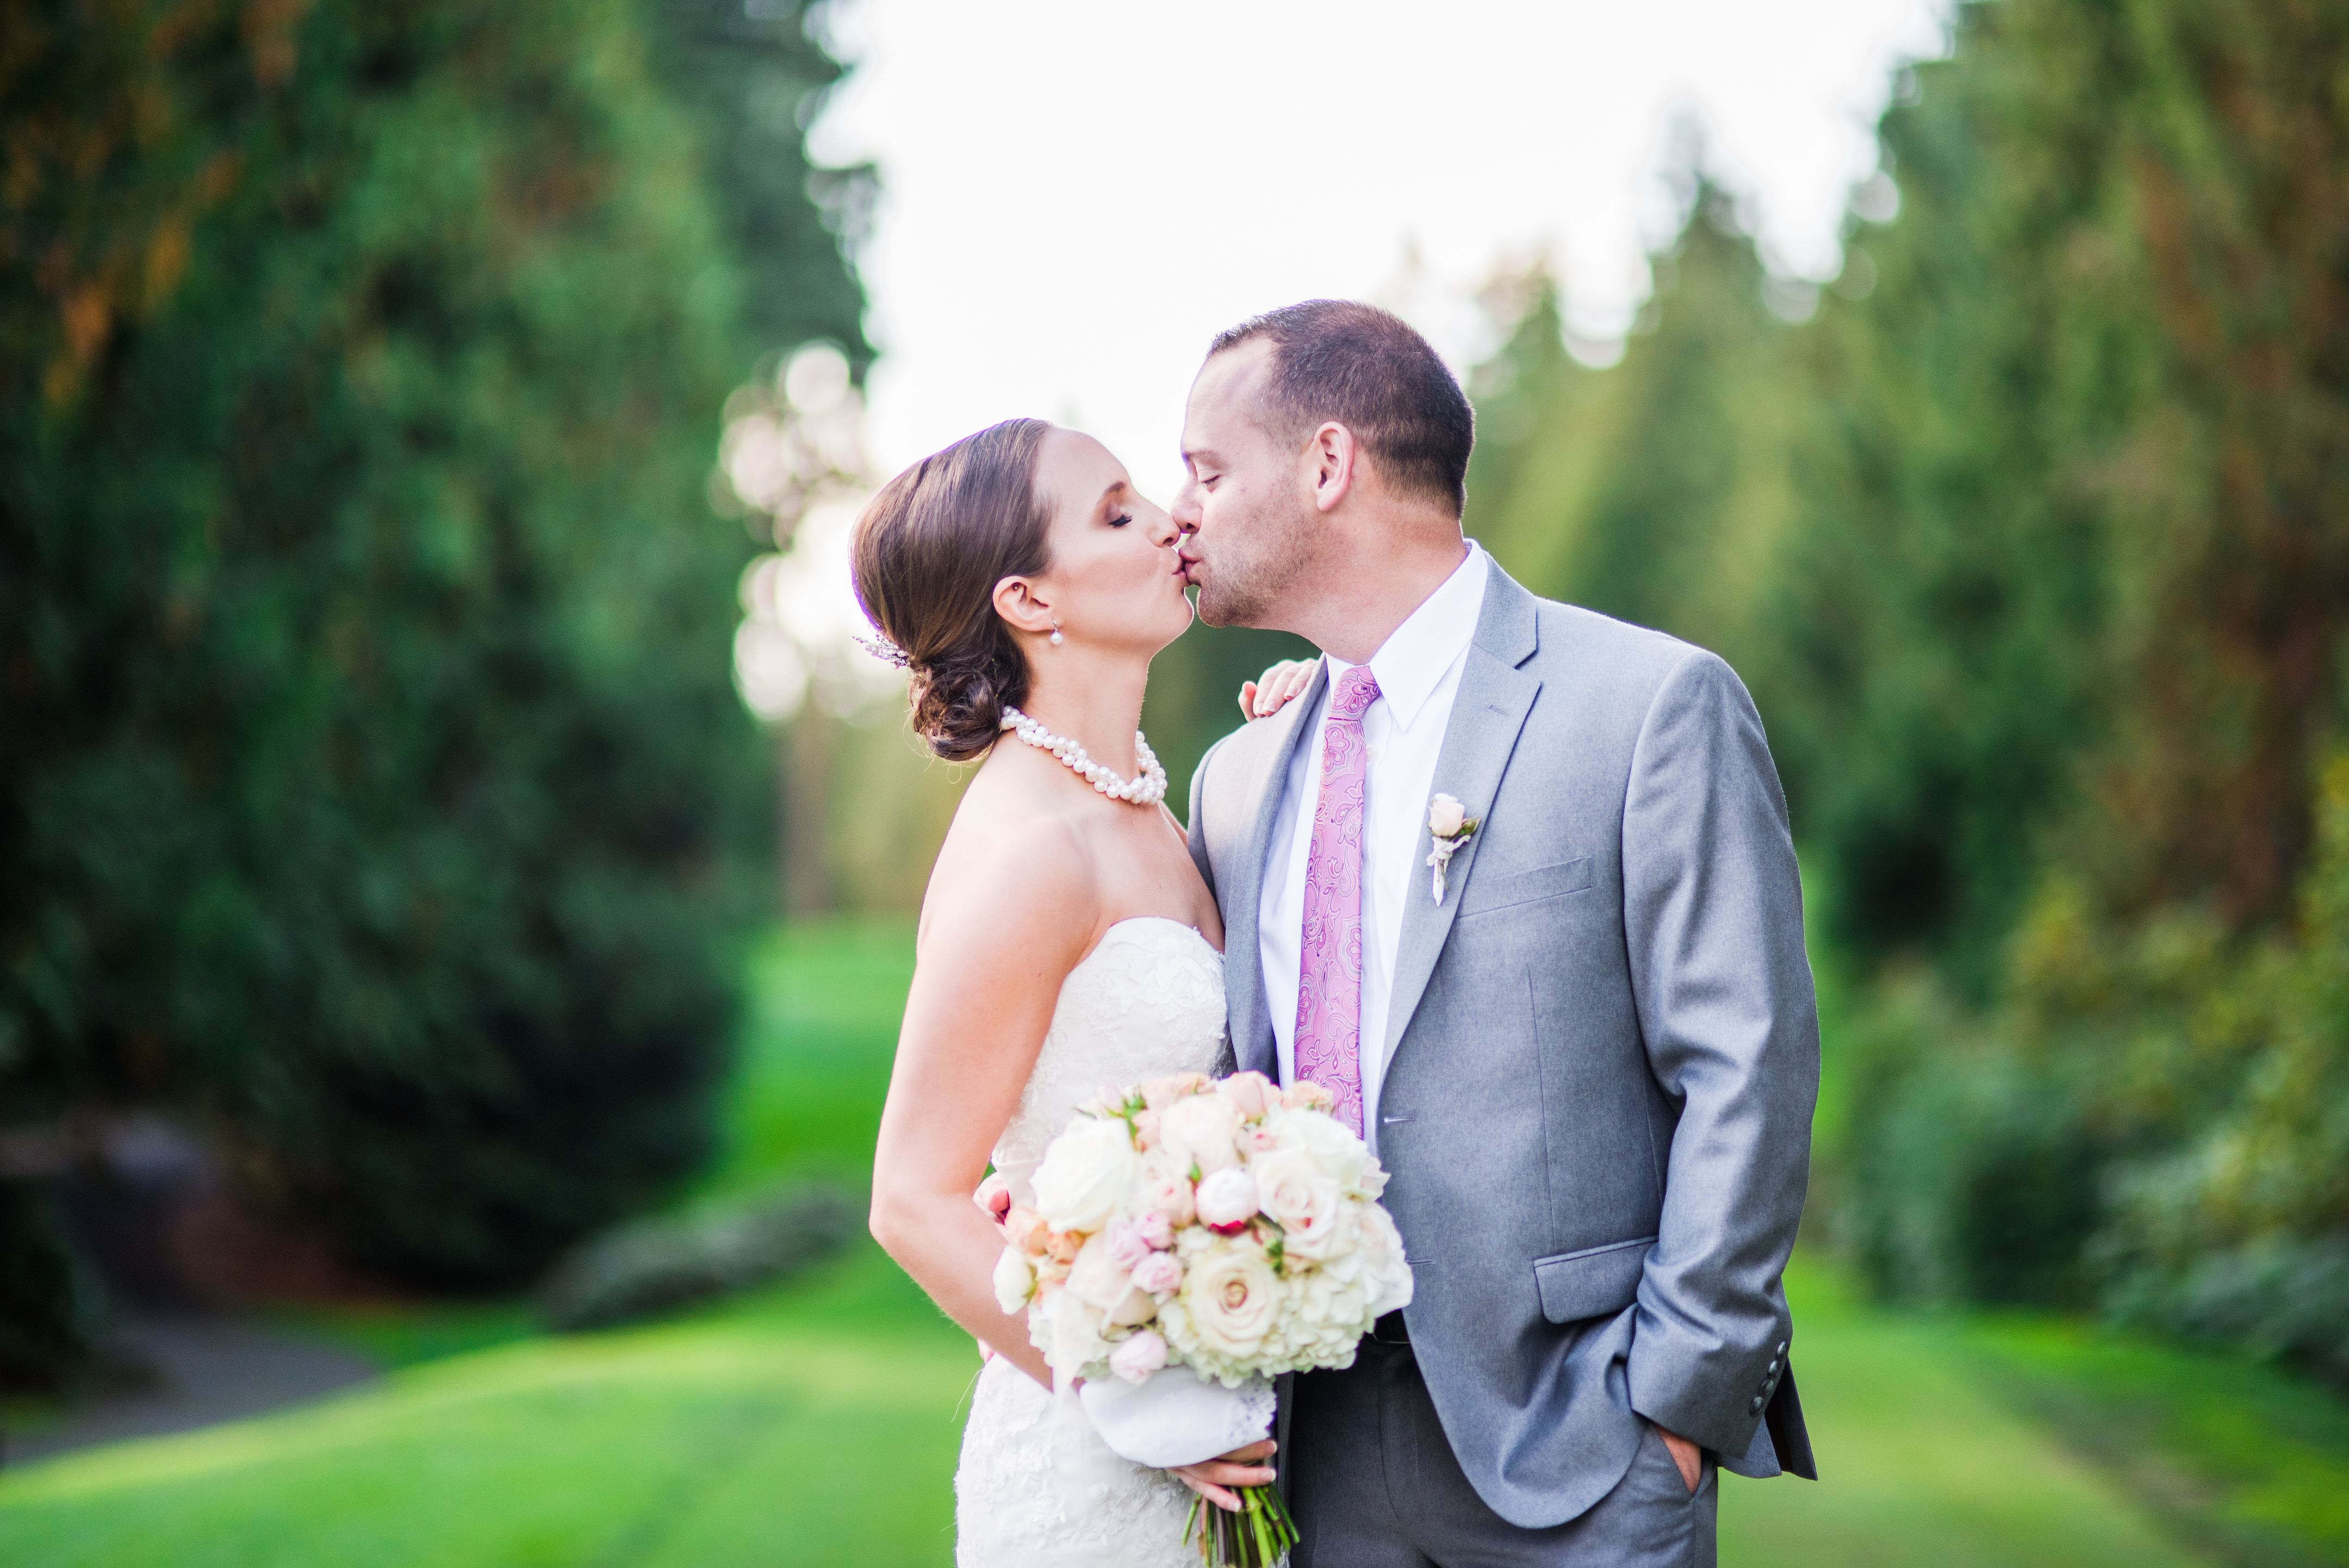 Kisses #kiss #bride #groom #flowers #floral #washingtongreen ...